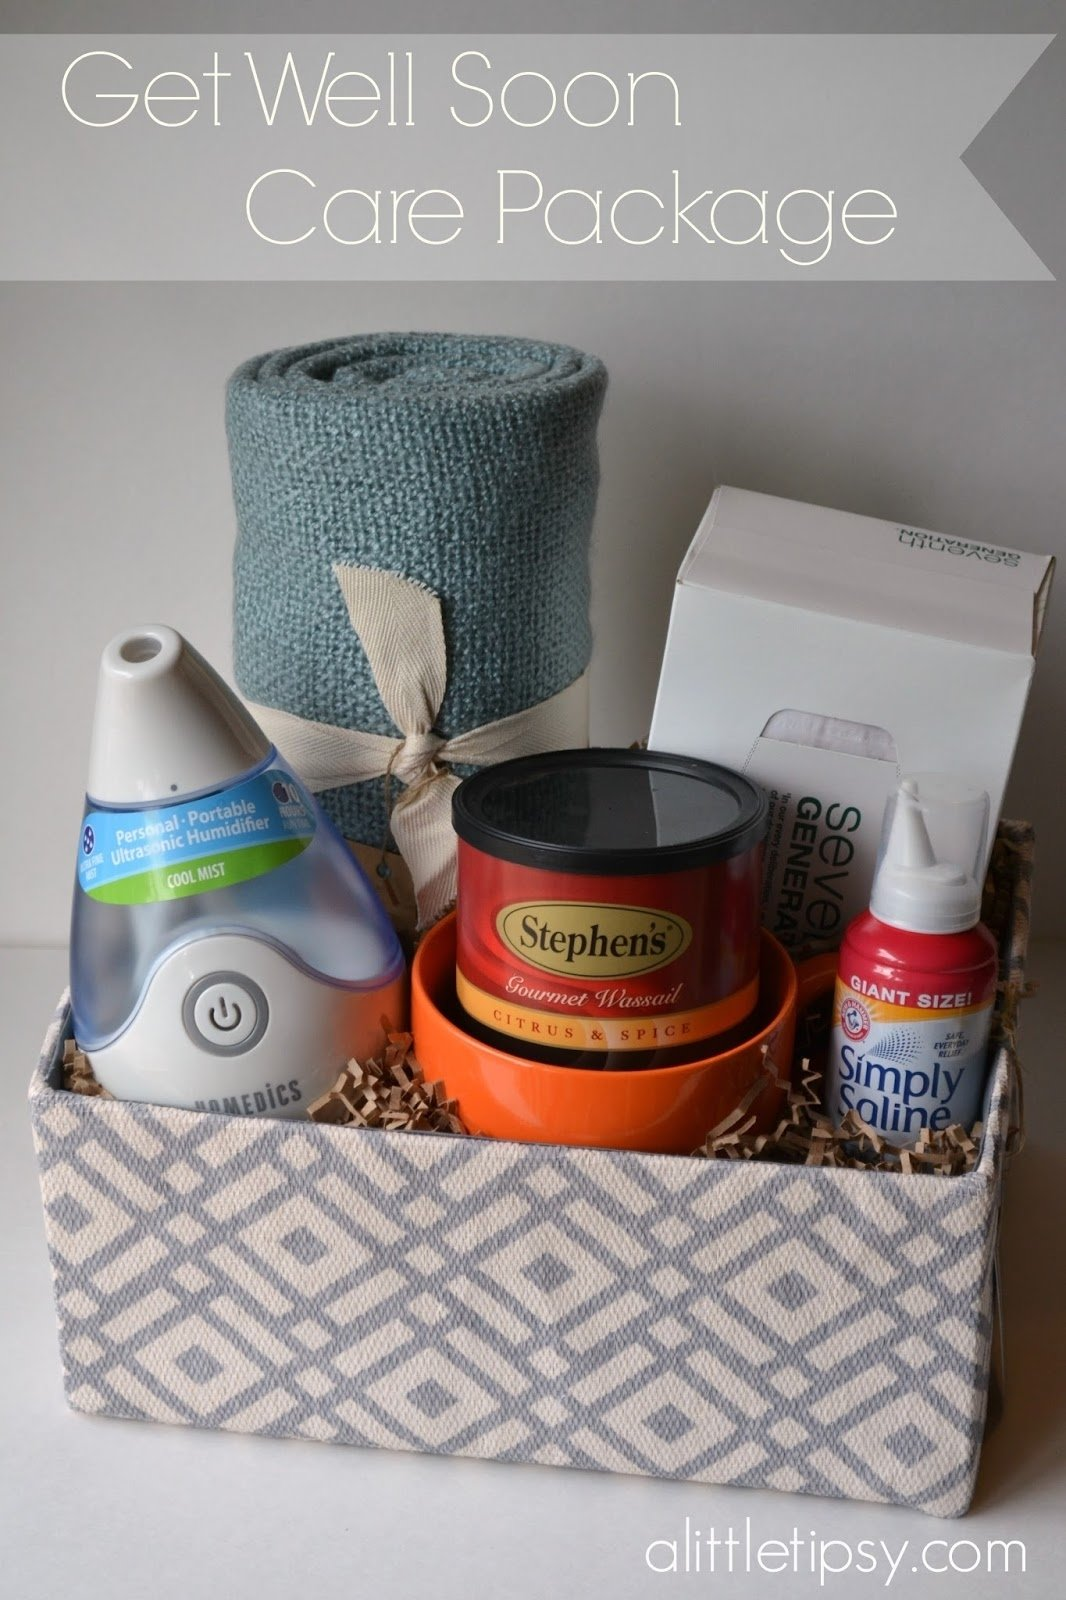 10 Attractive Get Well Soon Care Package Ideas get well soon care package a little tipsy 2020